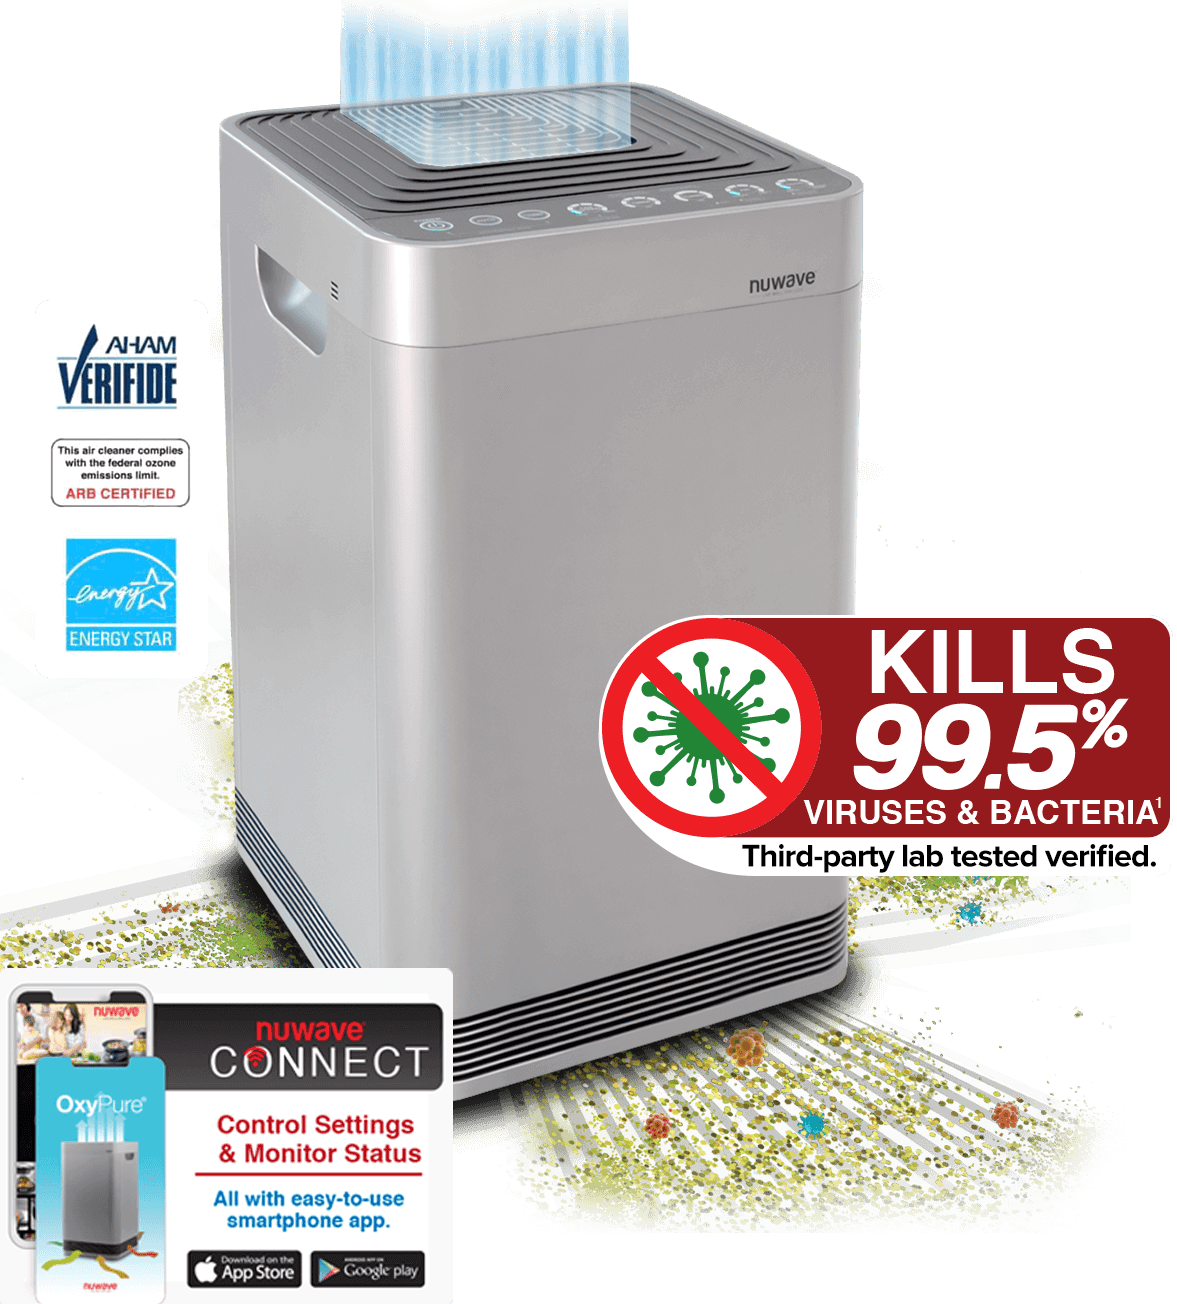 NuWave OxyPure Smart Air Purifier in 2020 Smart air